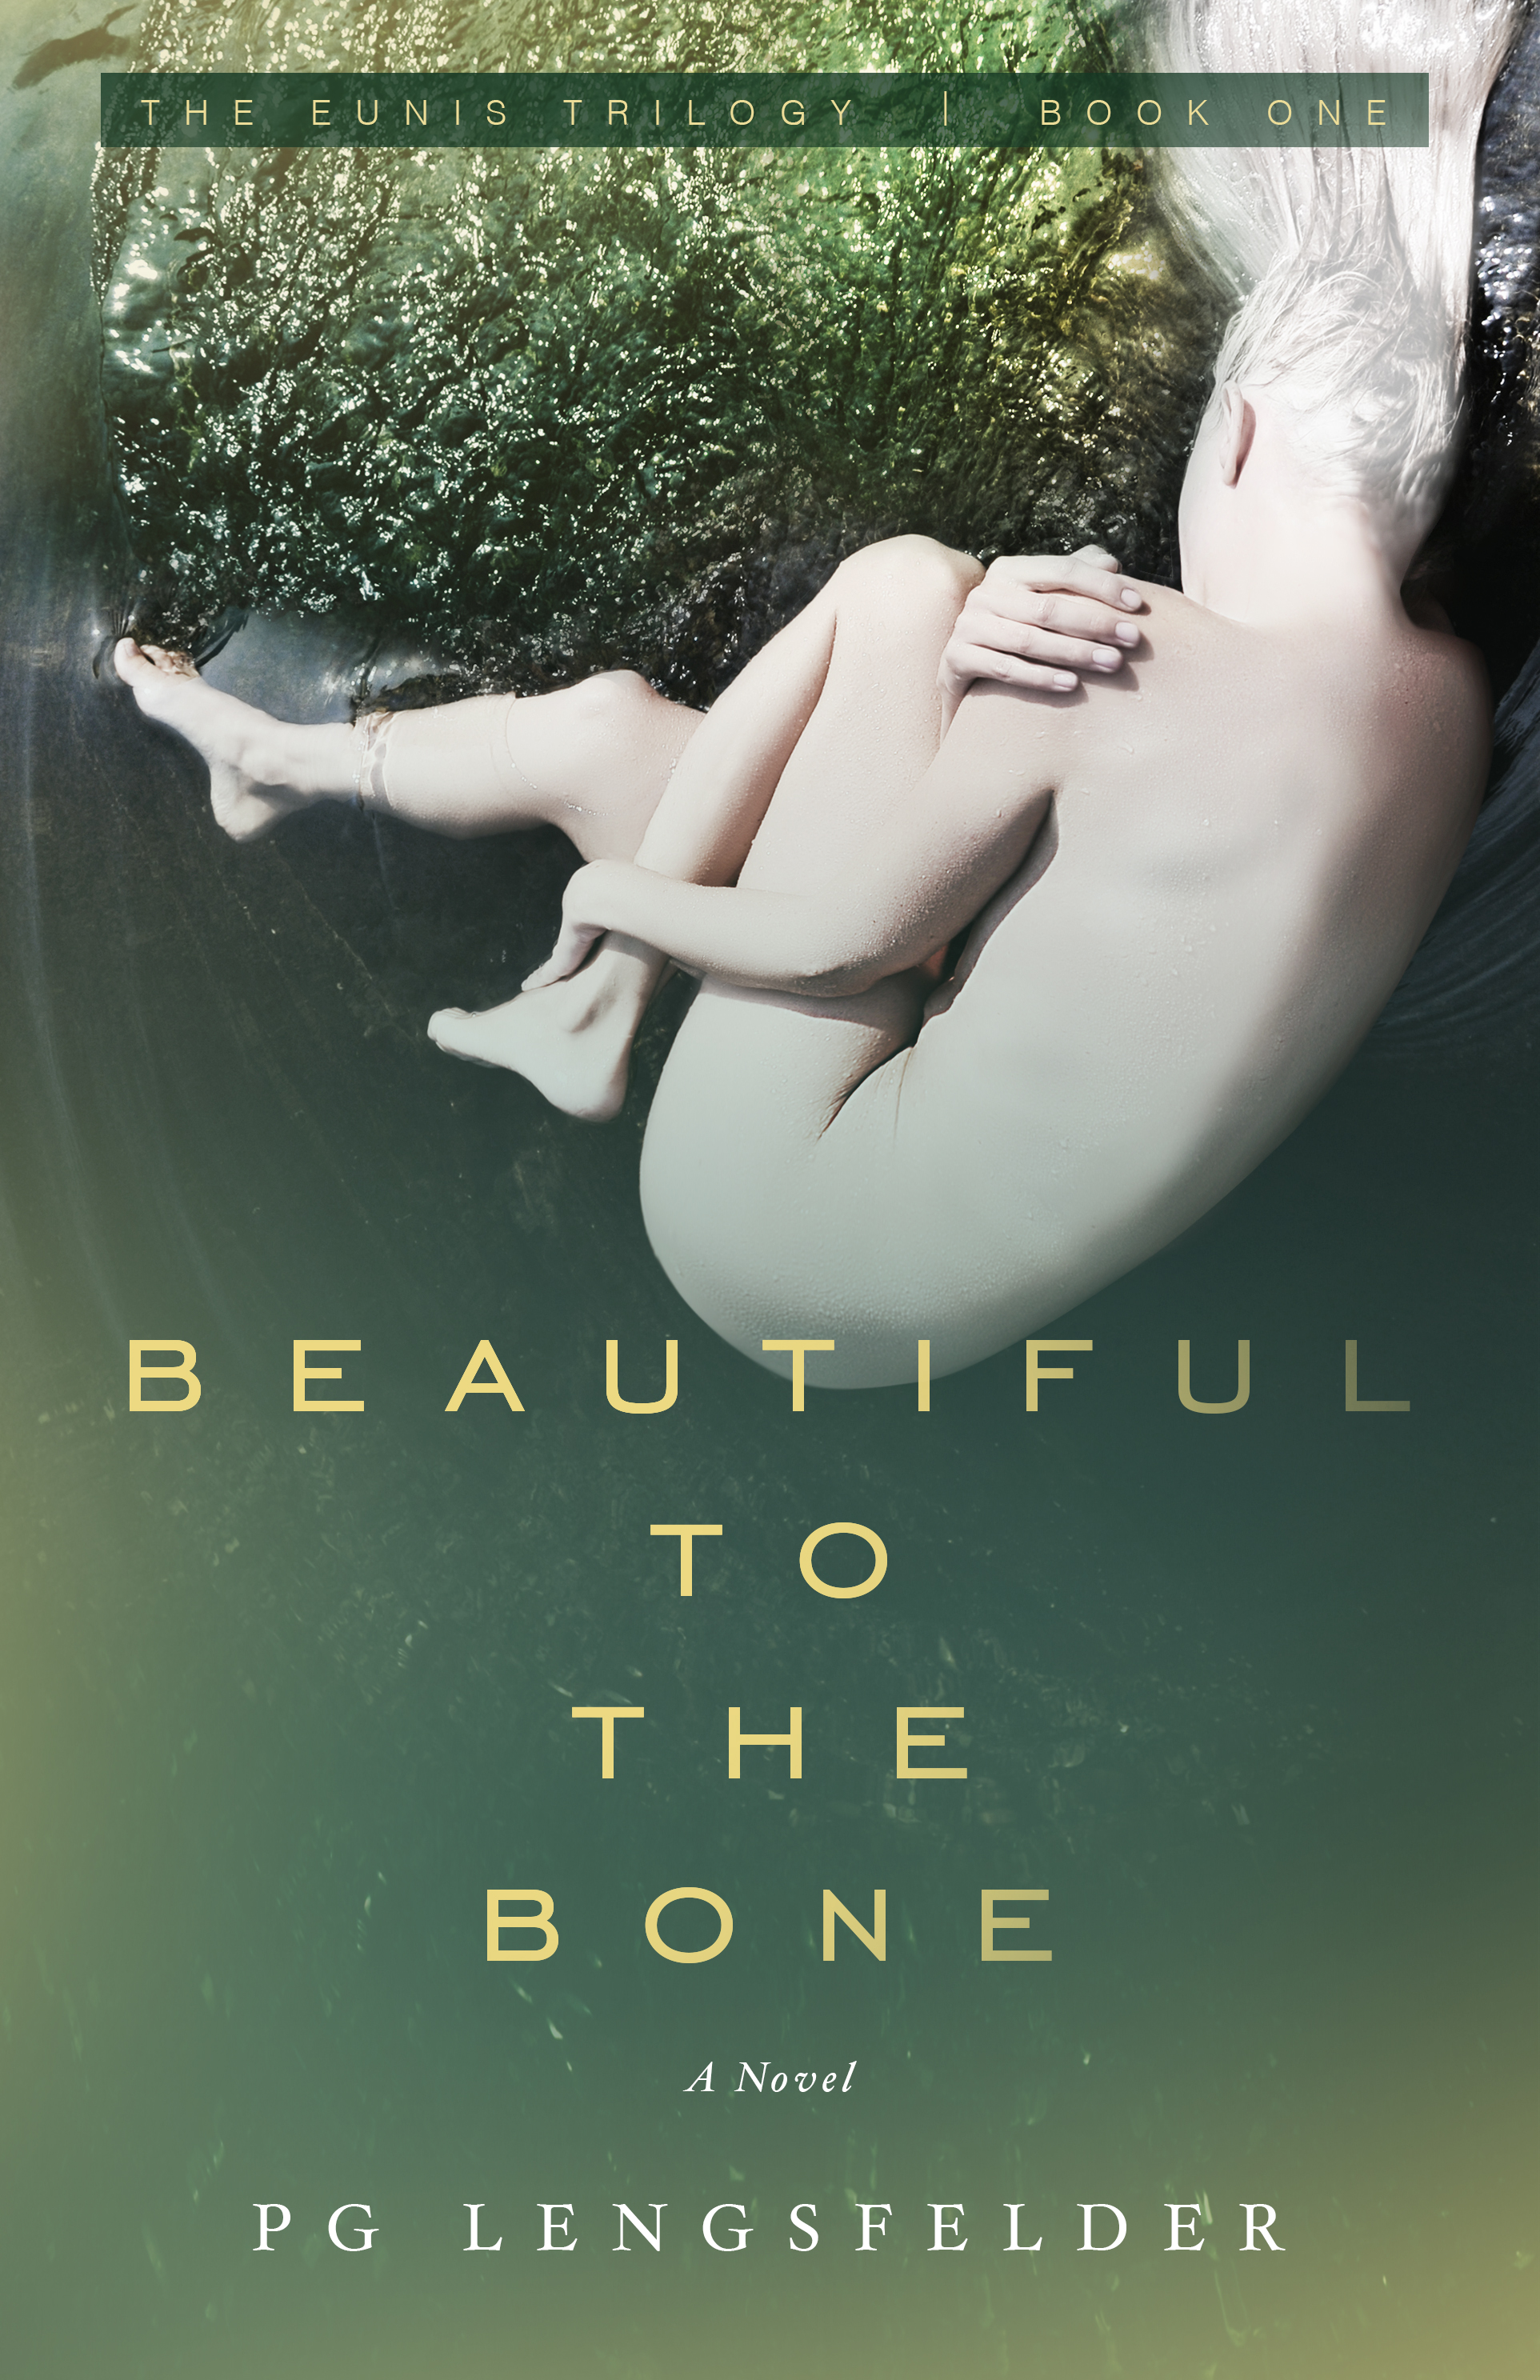 BeautifulToTheBone_FINAL_COVER_2.17.16.jpg